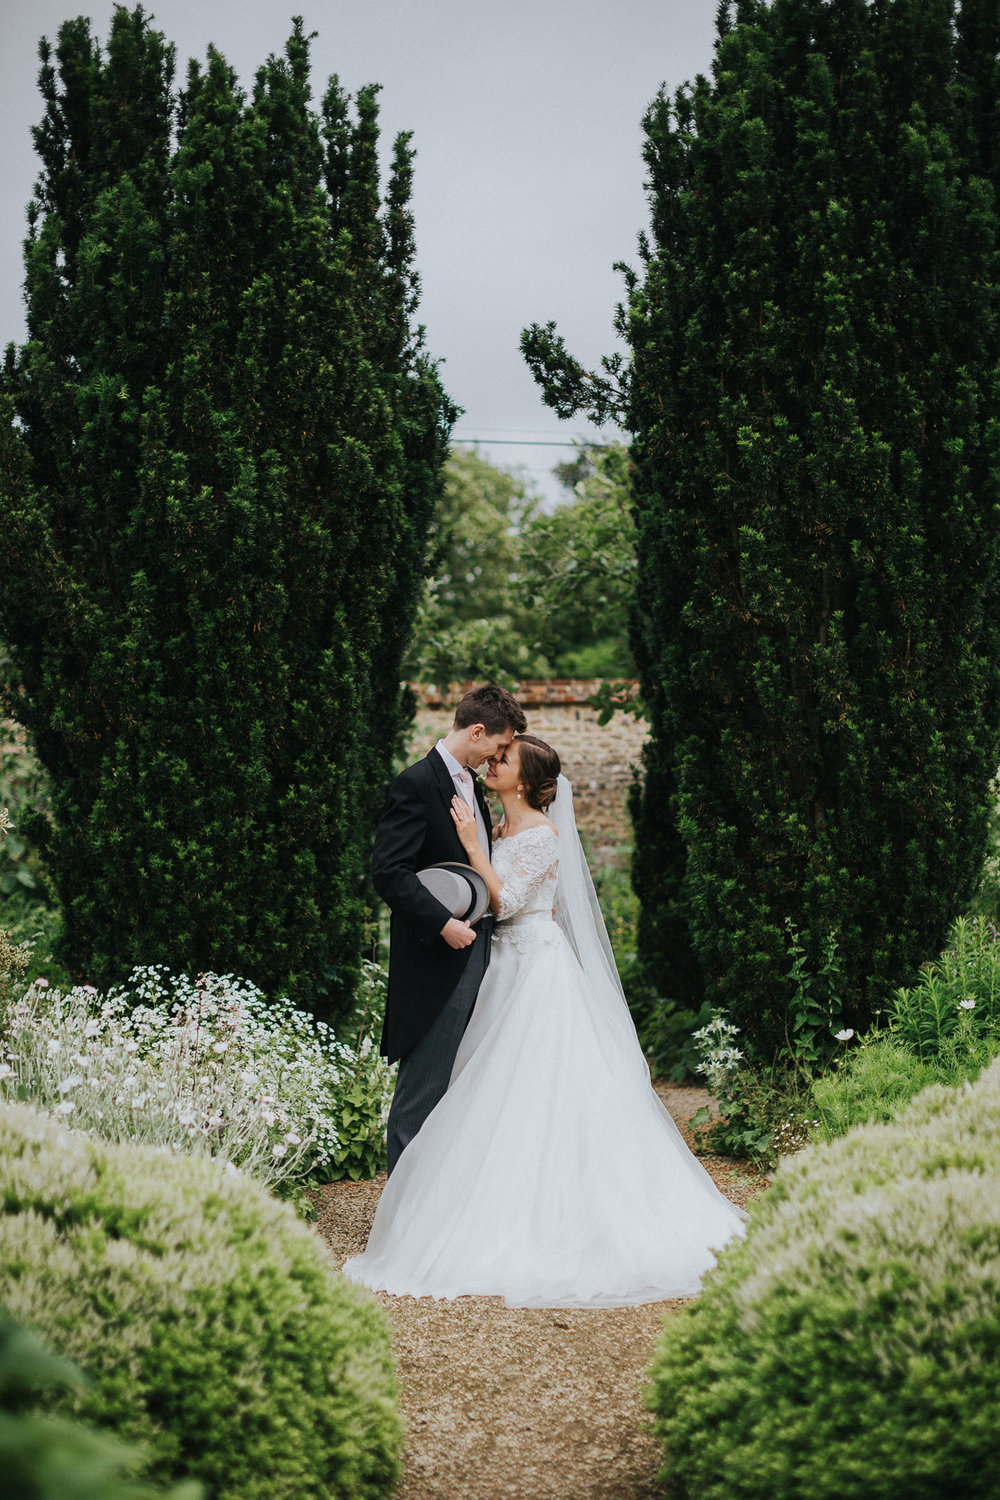 Loseley Park Wedding122.jpg